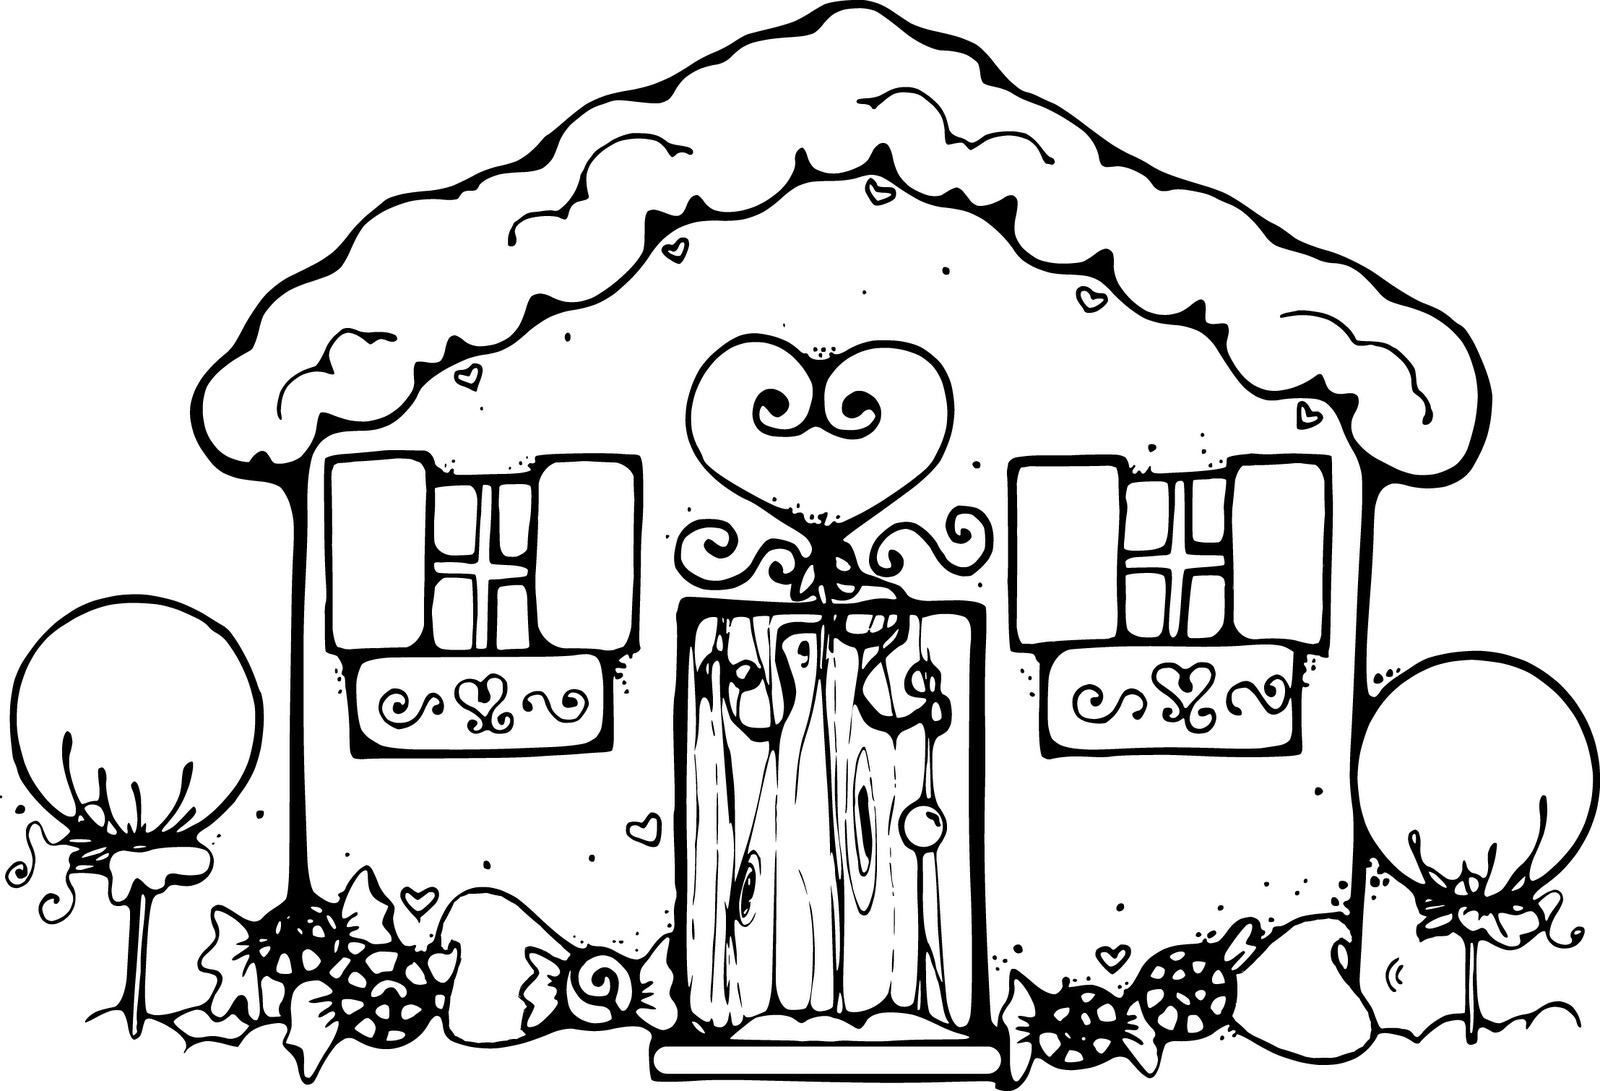 Practical House Coloring Pages To Print Free Printable For Kids  16165